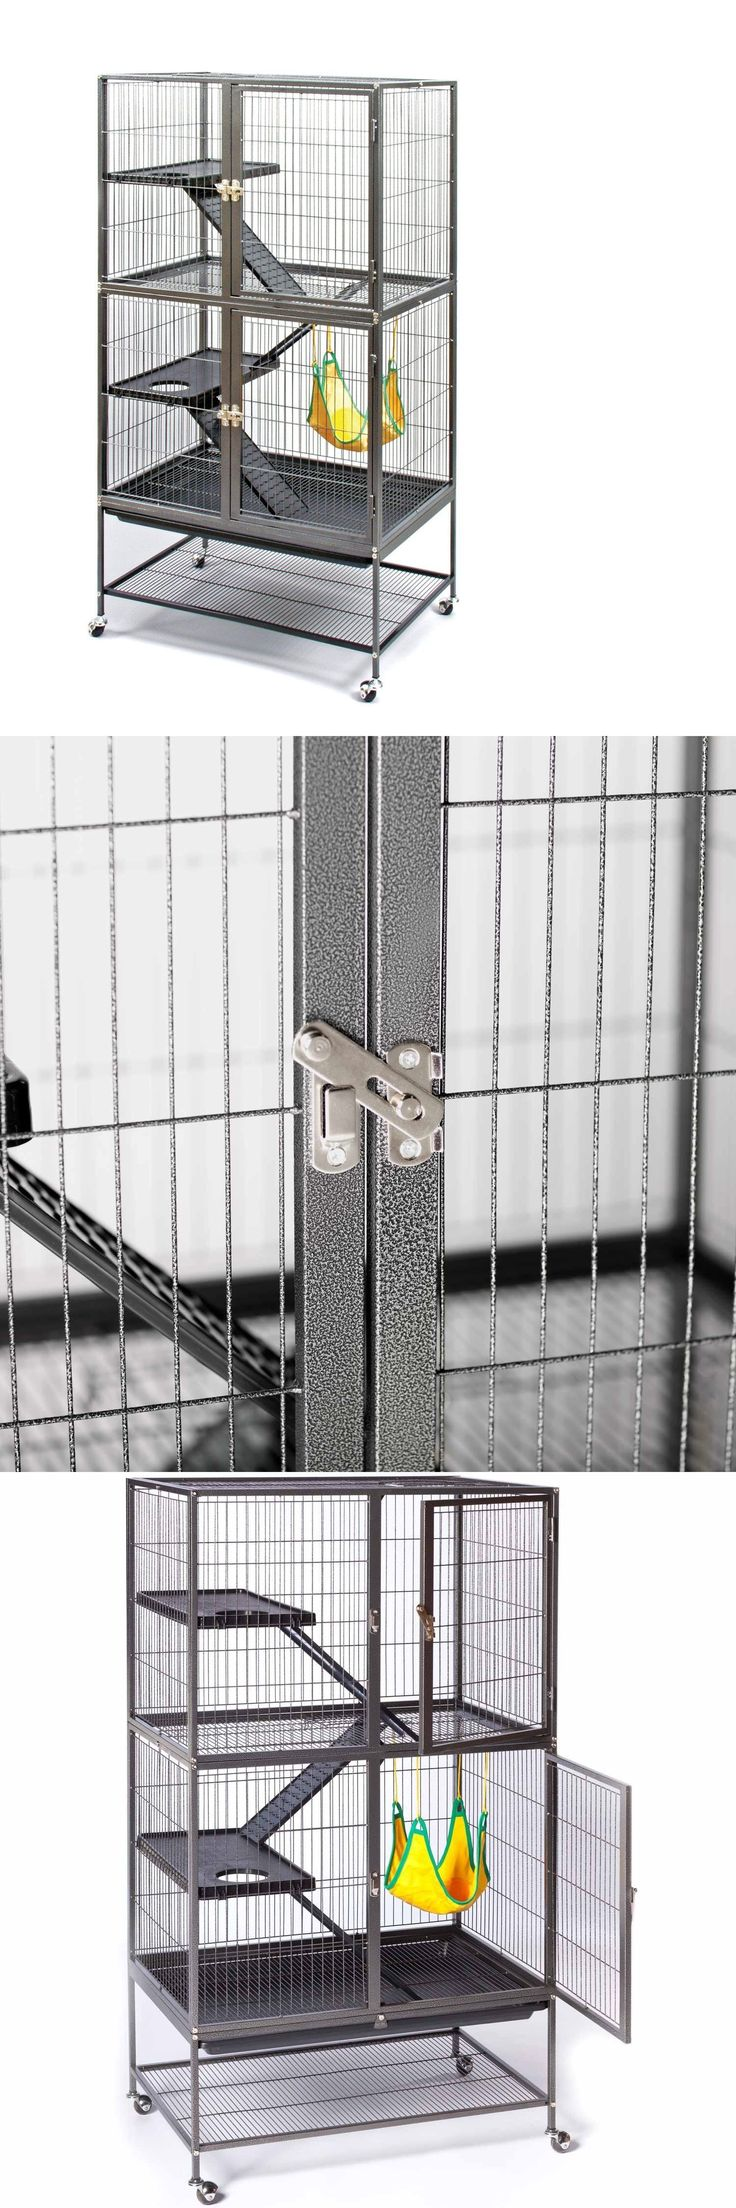 17 Best ideas about Ferret Cage on Pinterest | Ferrets ...